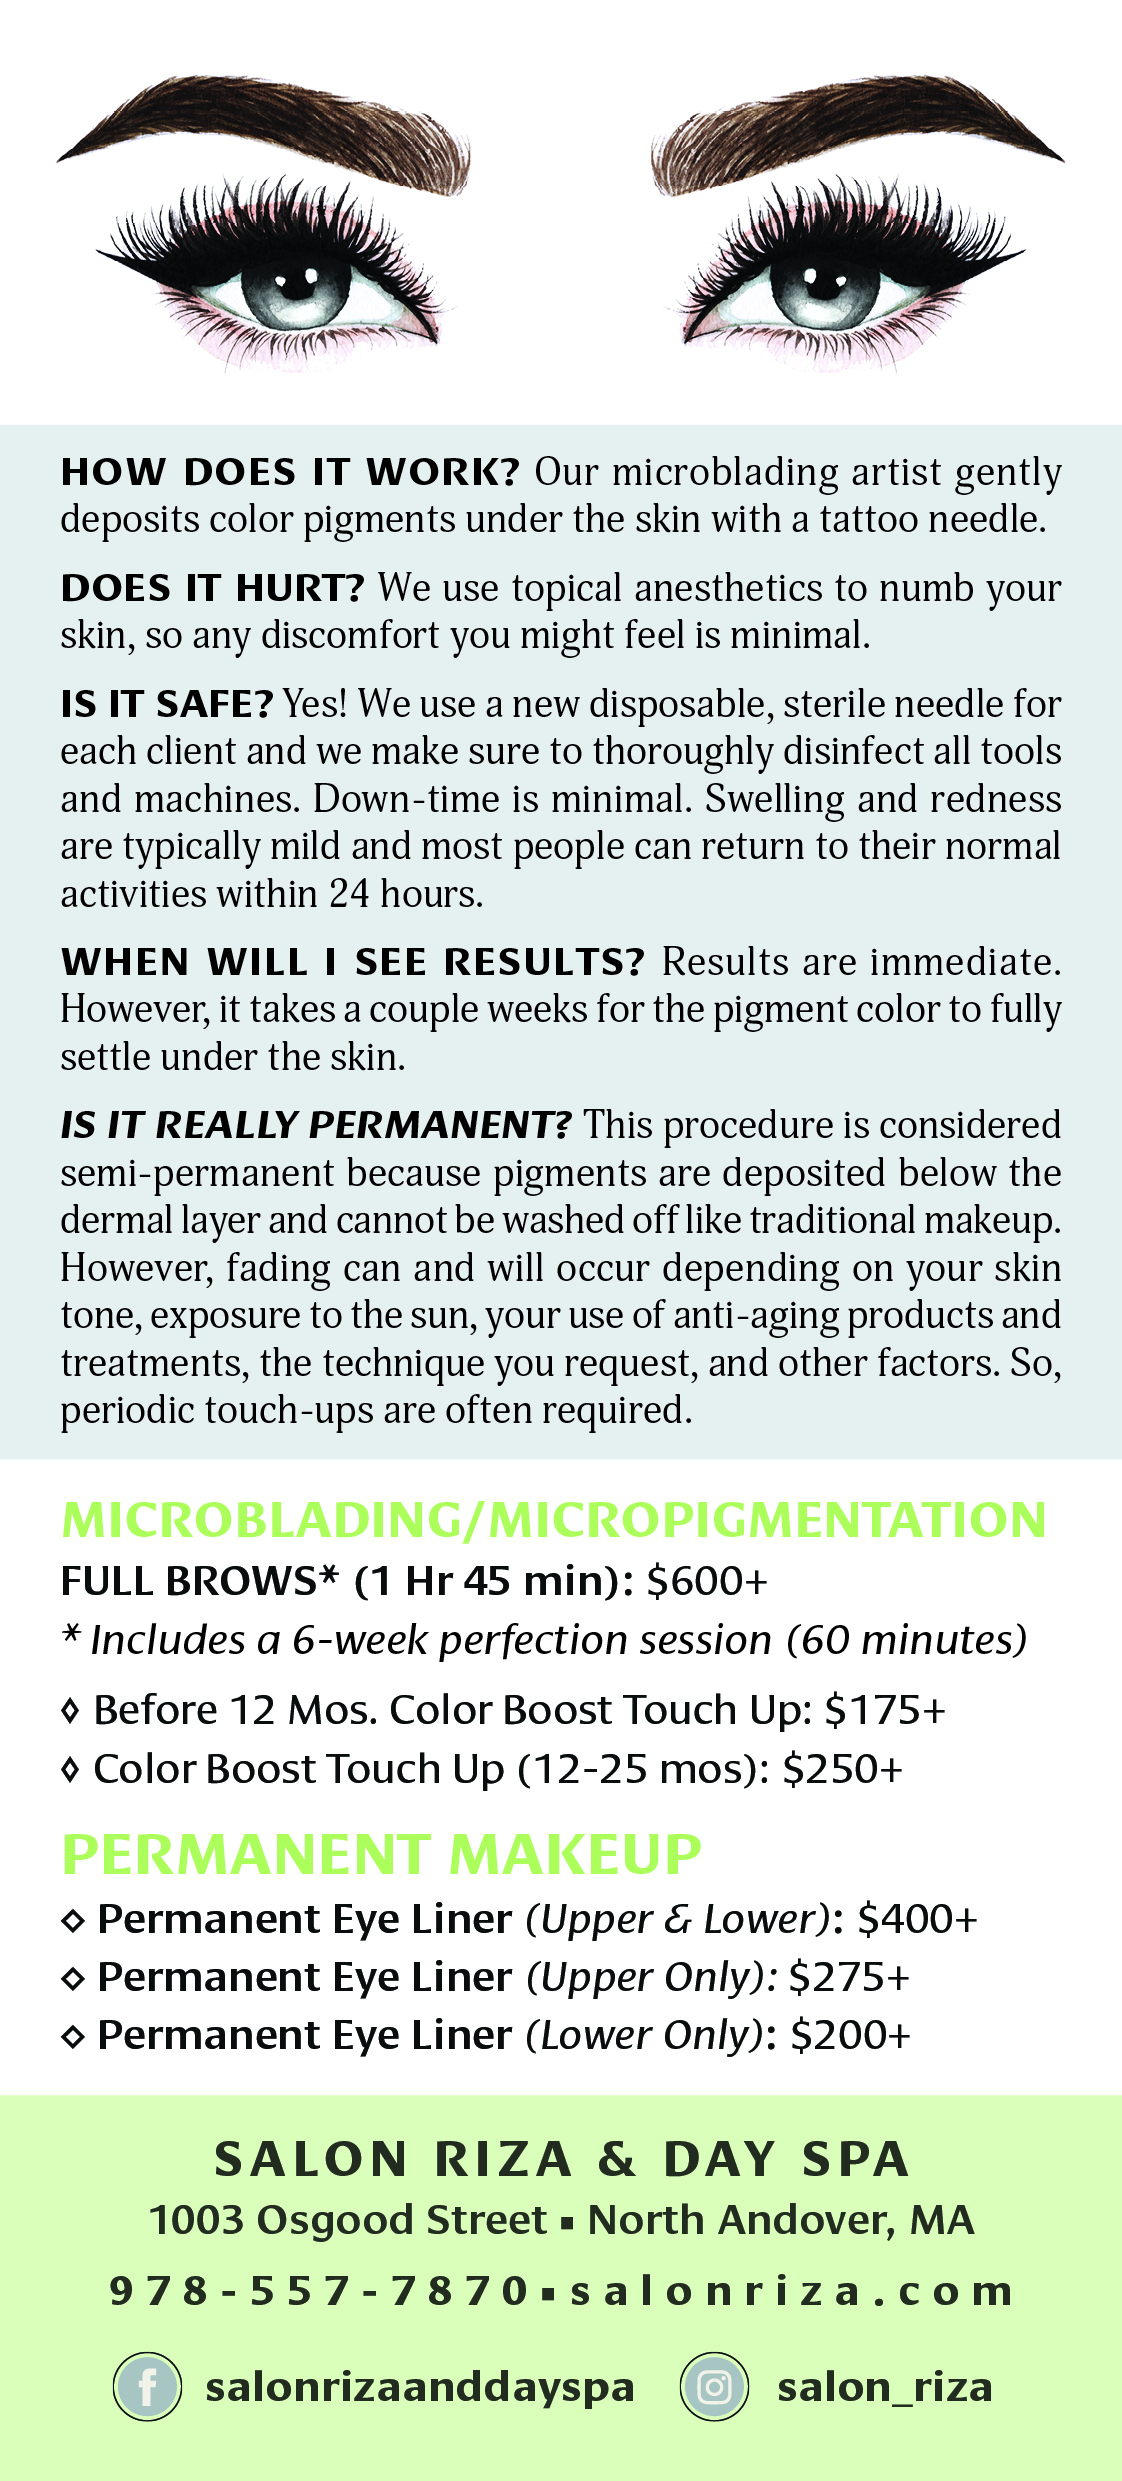 Rack Card Salon Riza Microblading.jpg